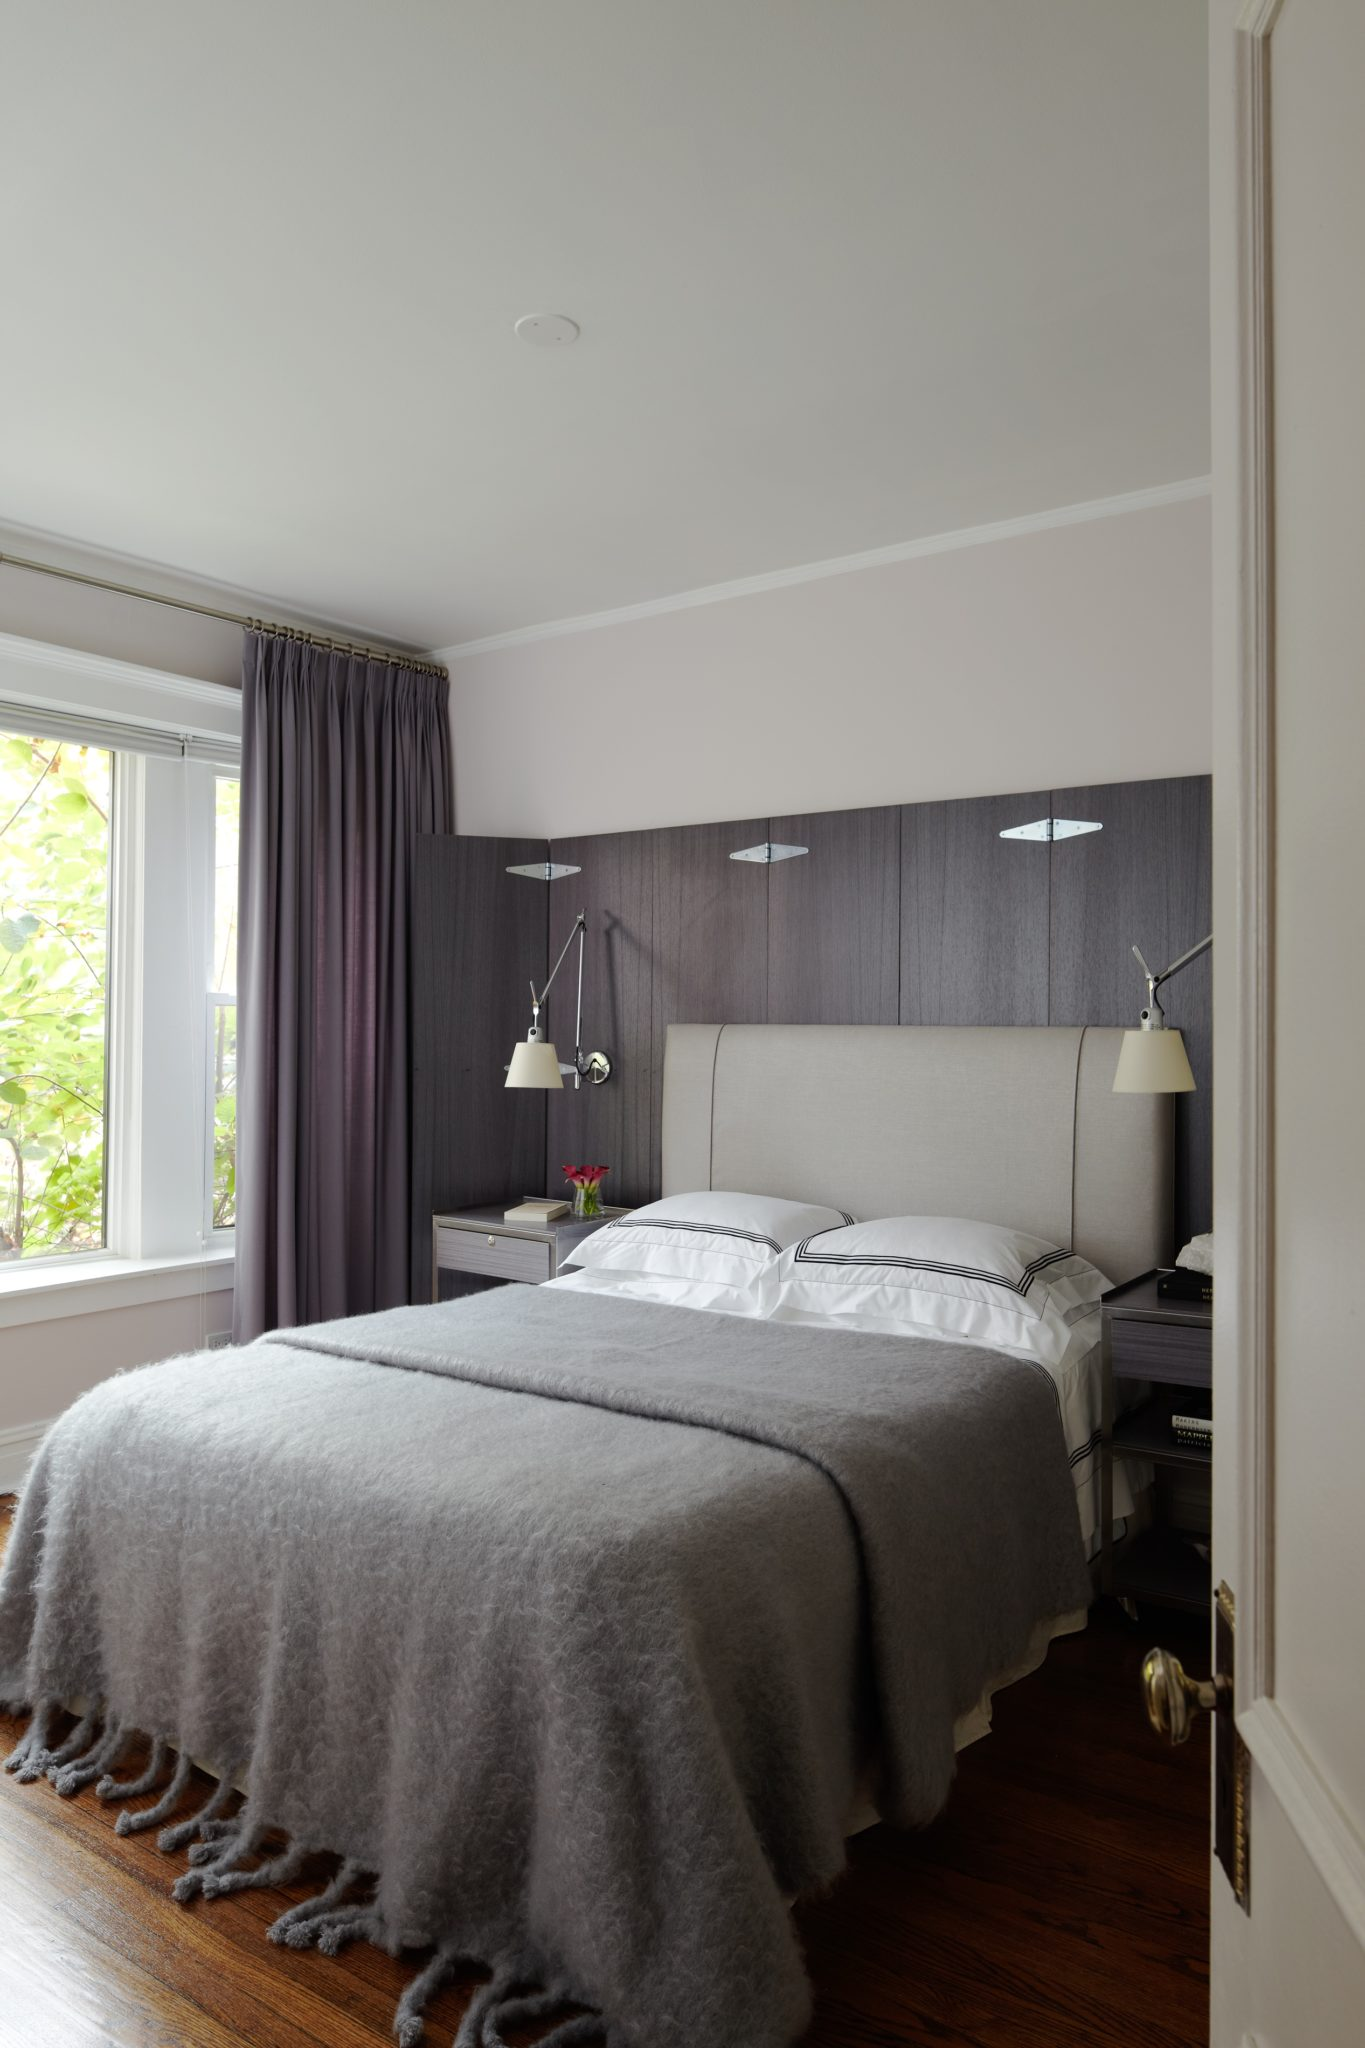 The bedroom has a bespoke screen behind the bed which also envelops the night tables. The sheets on the bed are Pratesi and the blanket is Hermès.